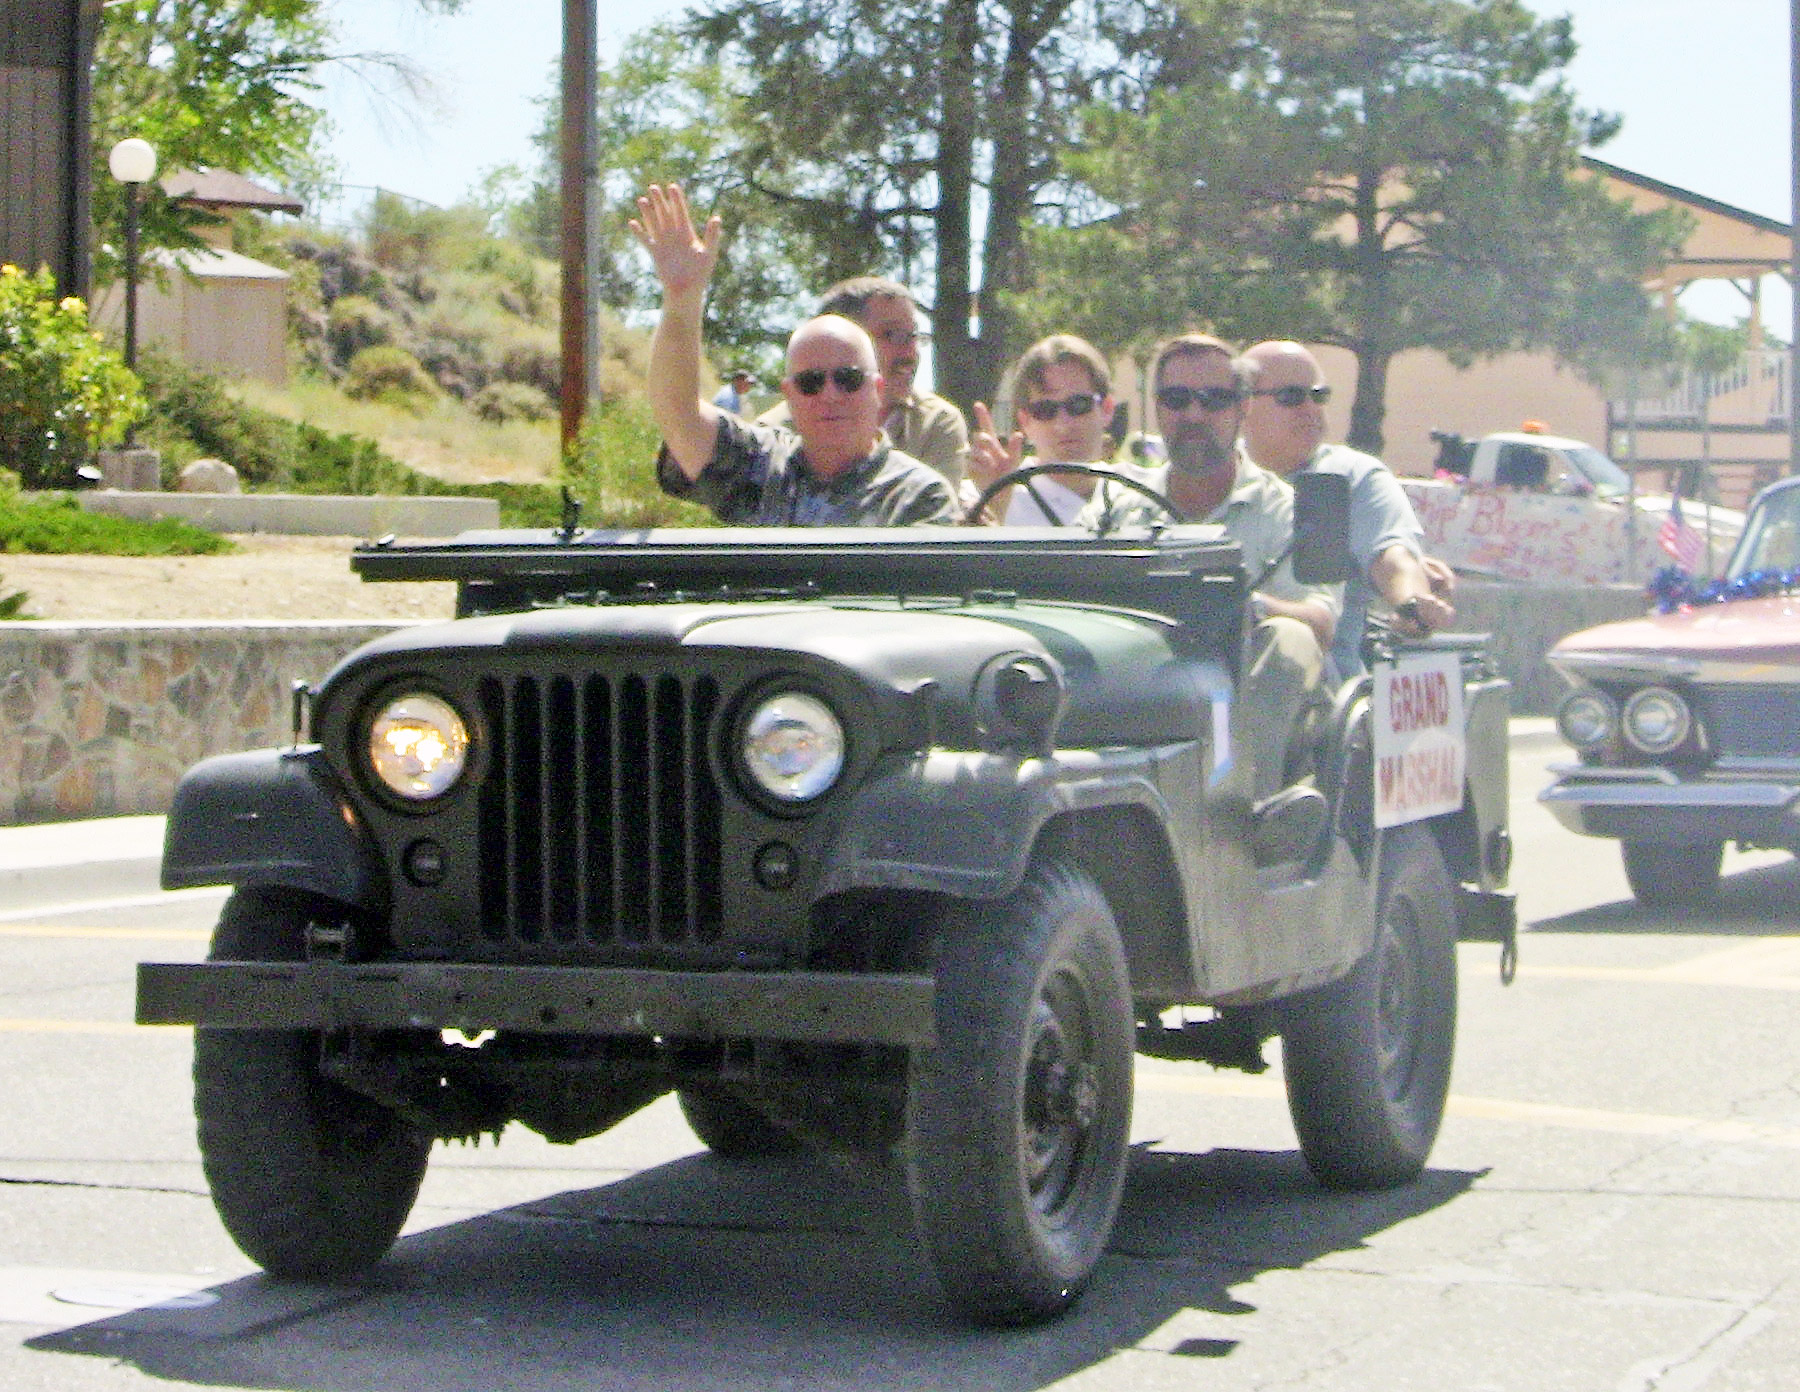 Kern County Supervisor David Couch cruises through the parade in a WWII era Jeep. [photo by Gary Meyer]